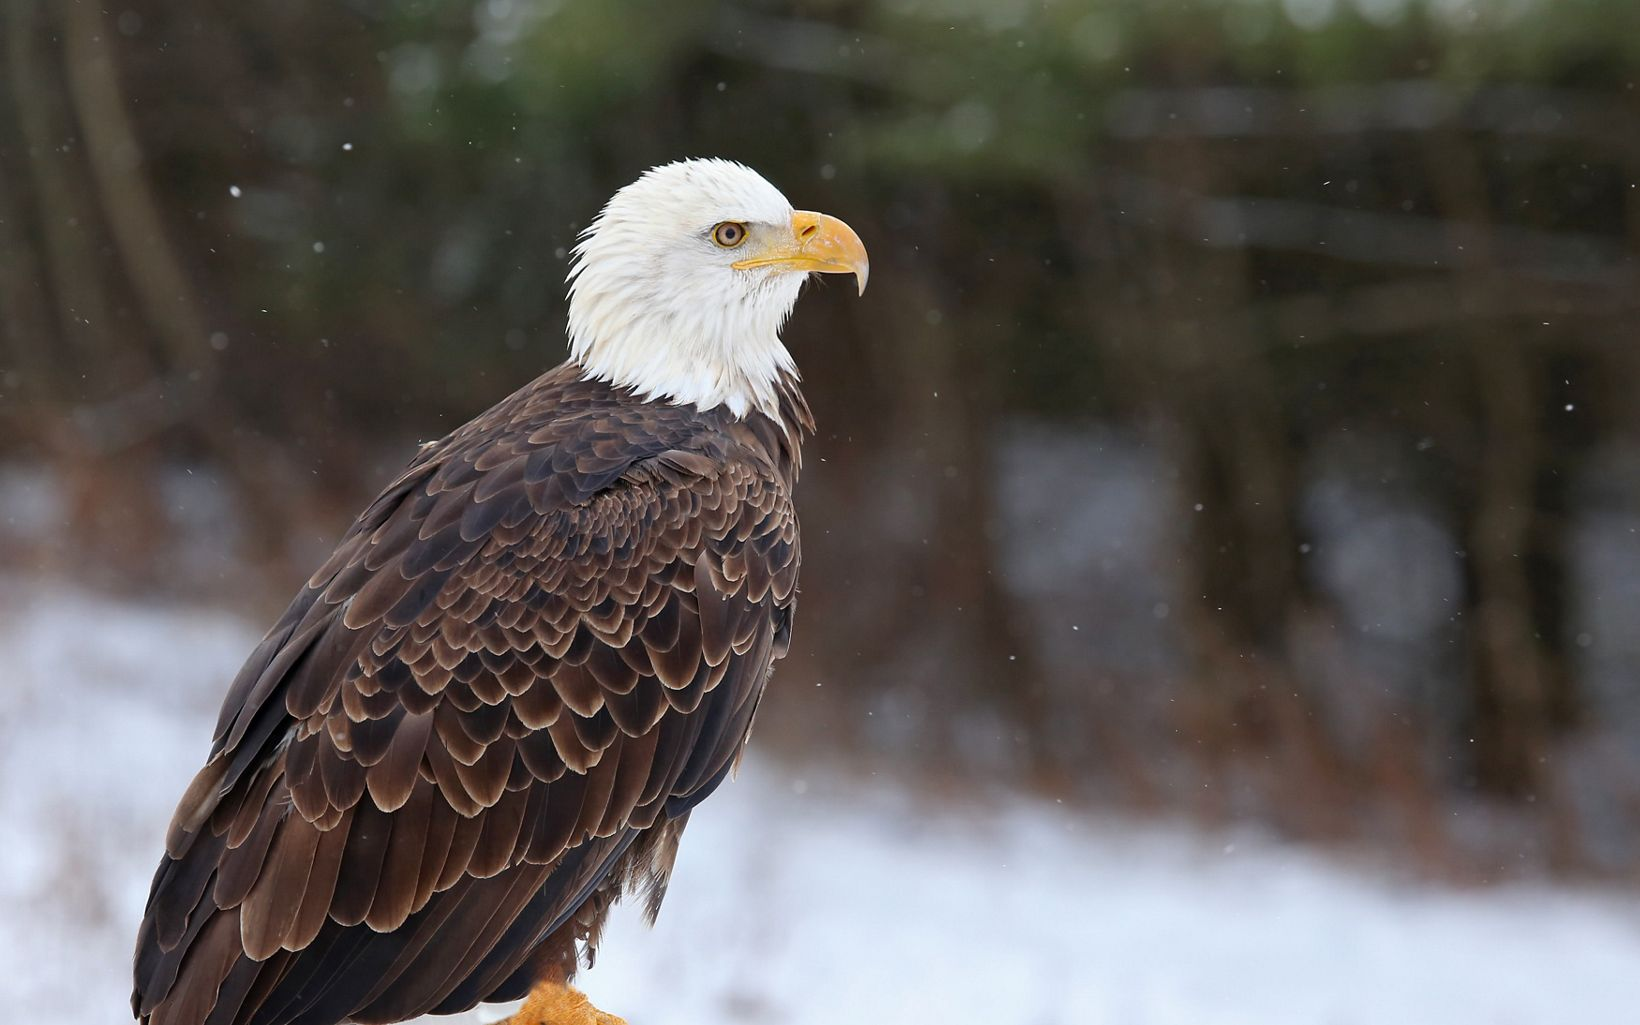 A bald eagle is sitting on a post surrounded by snow.